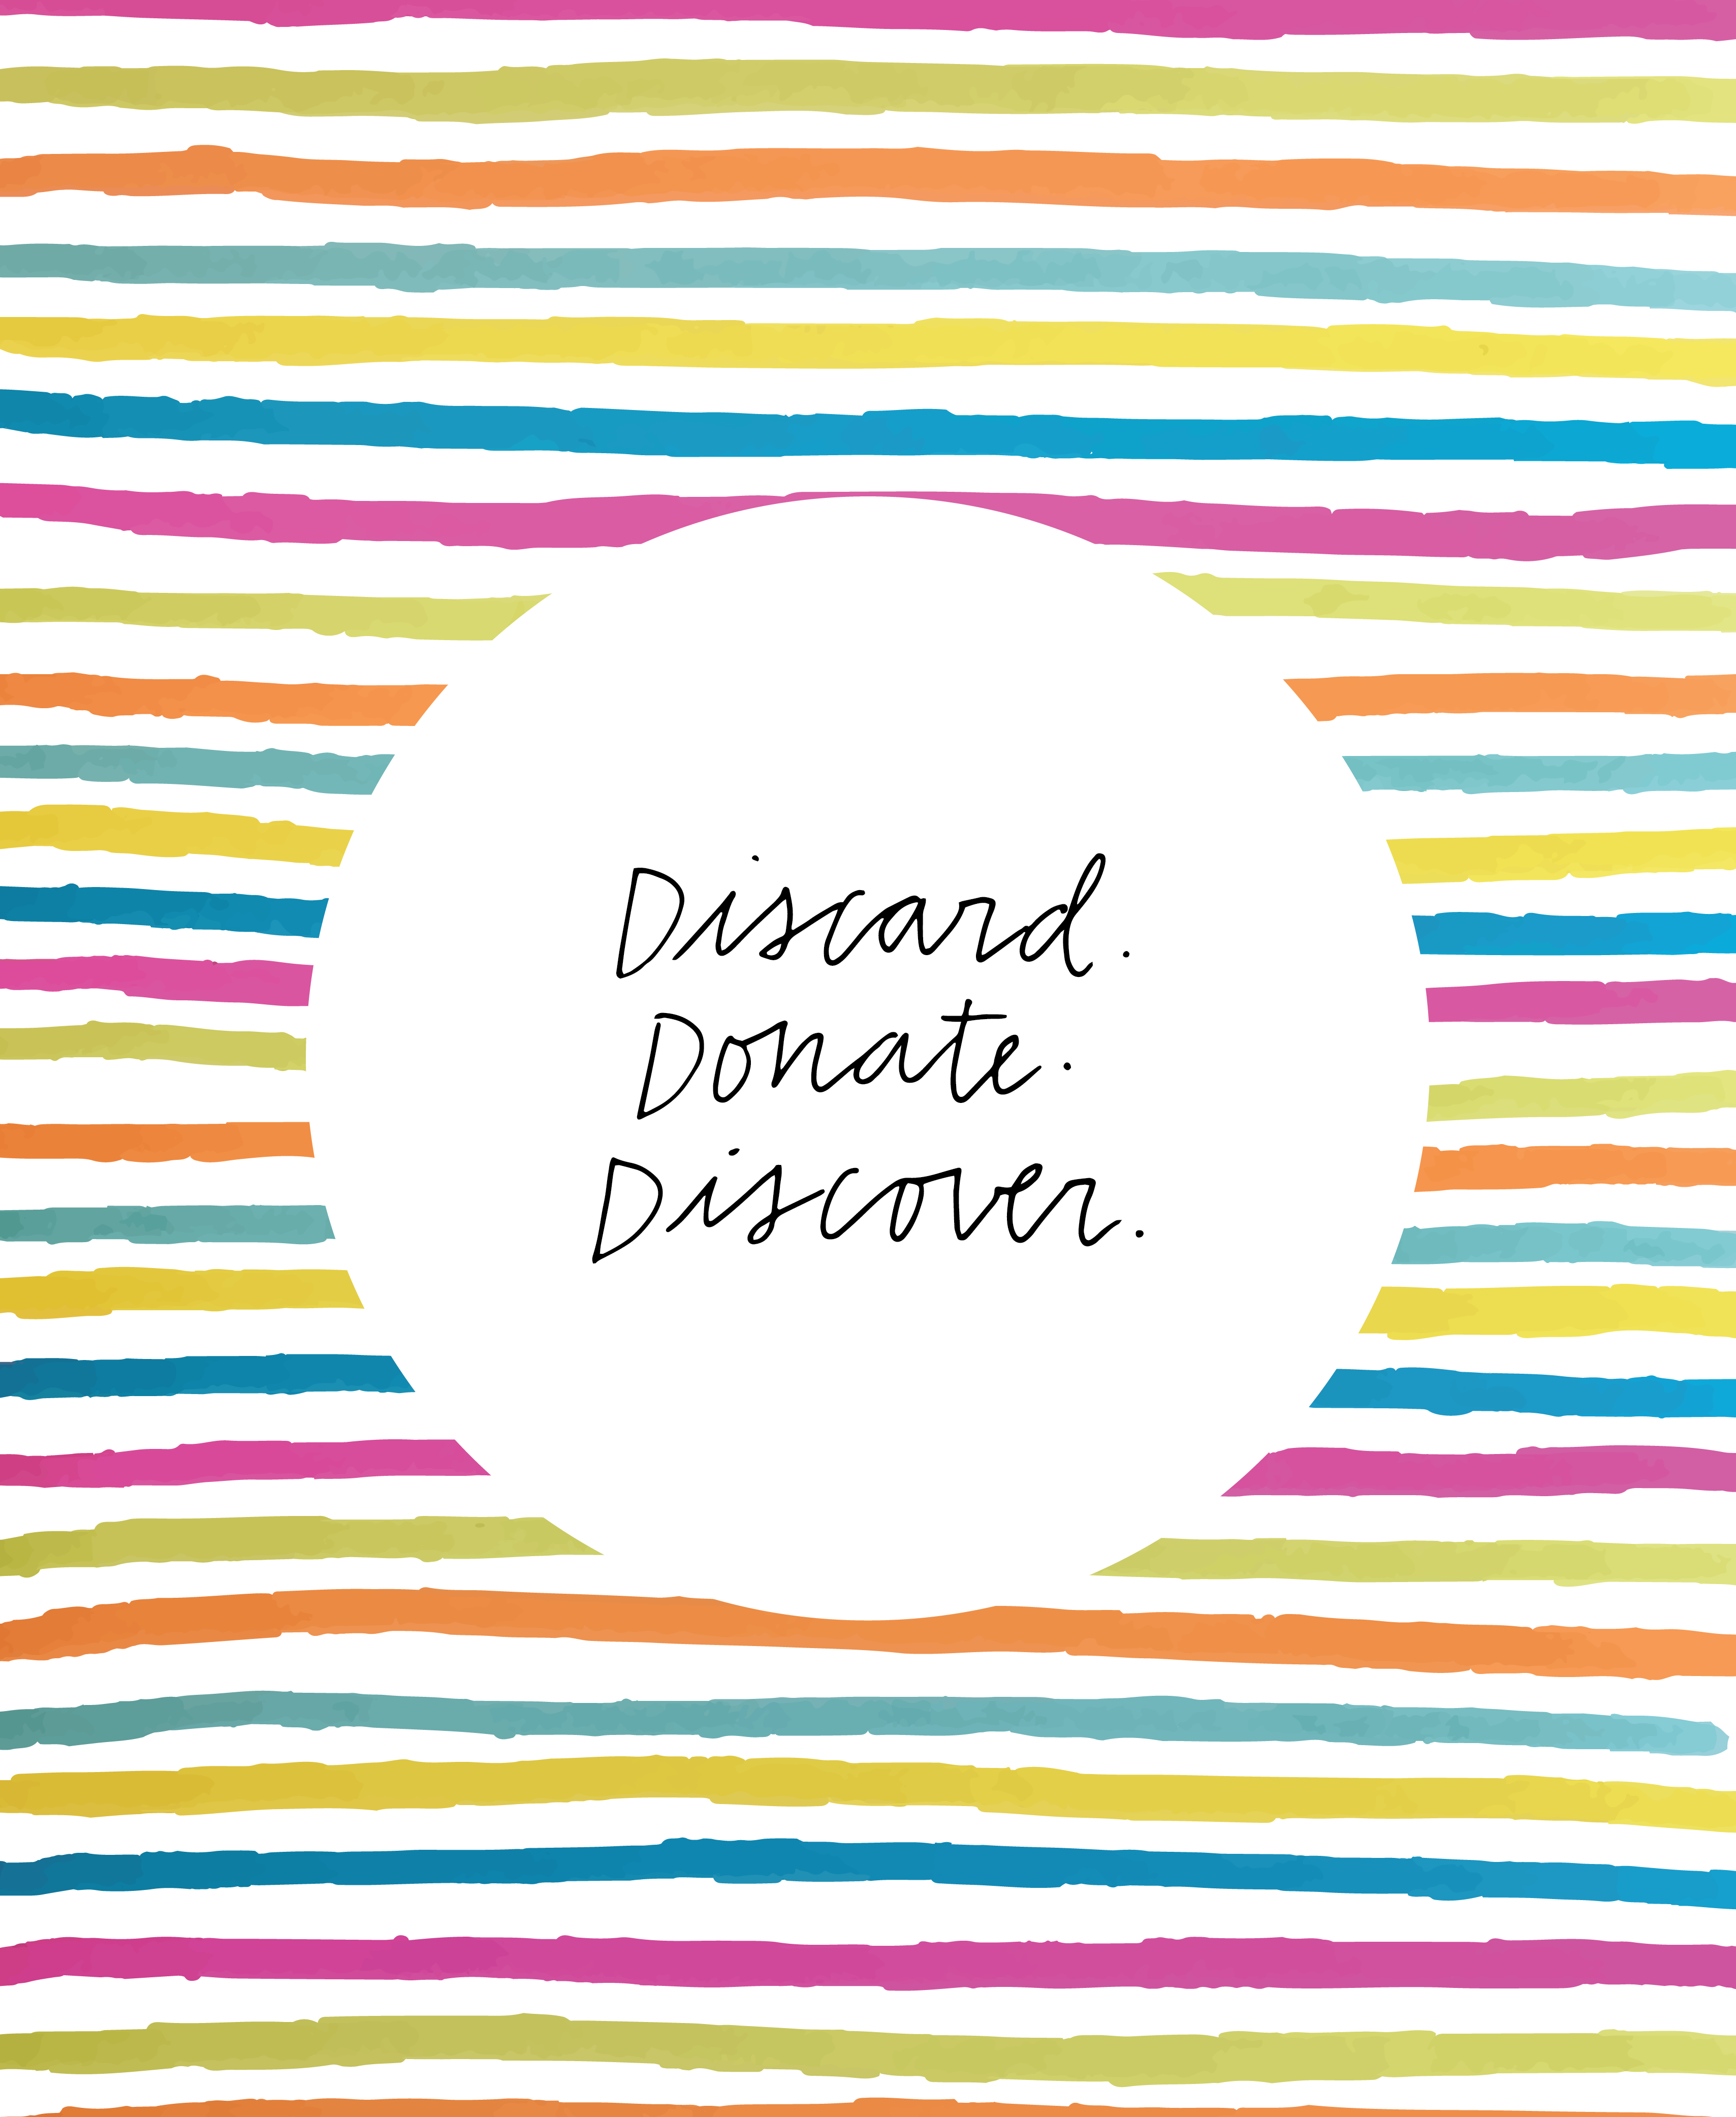 Discard. Donate. Discover.